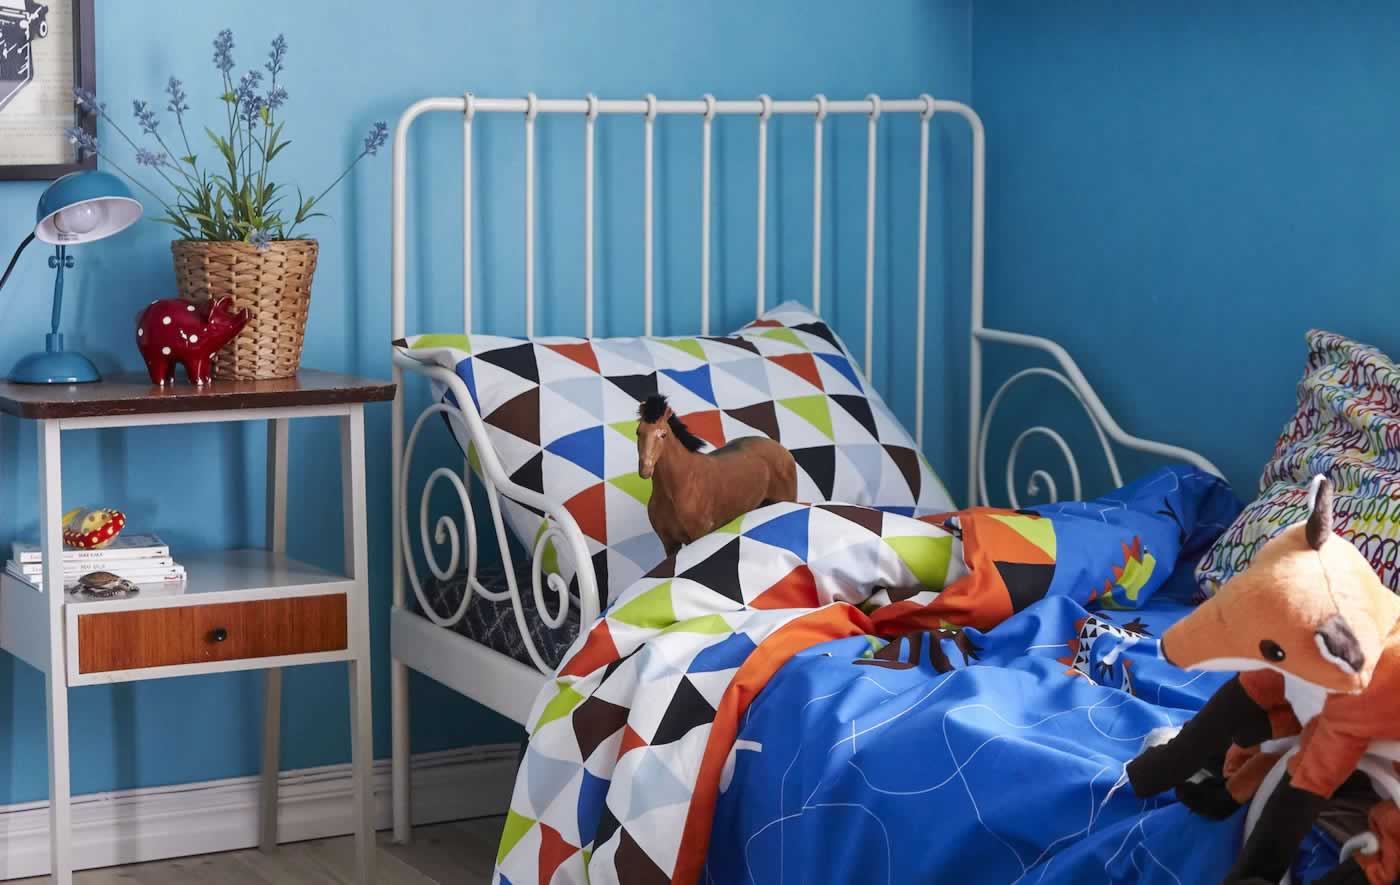 IKEA Ideas - A kid's room to inspire young imaginations